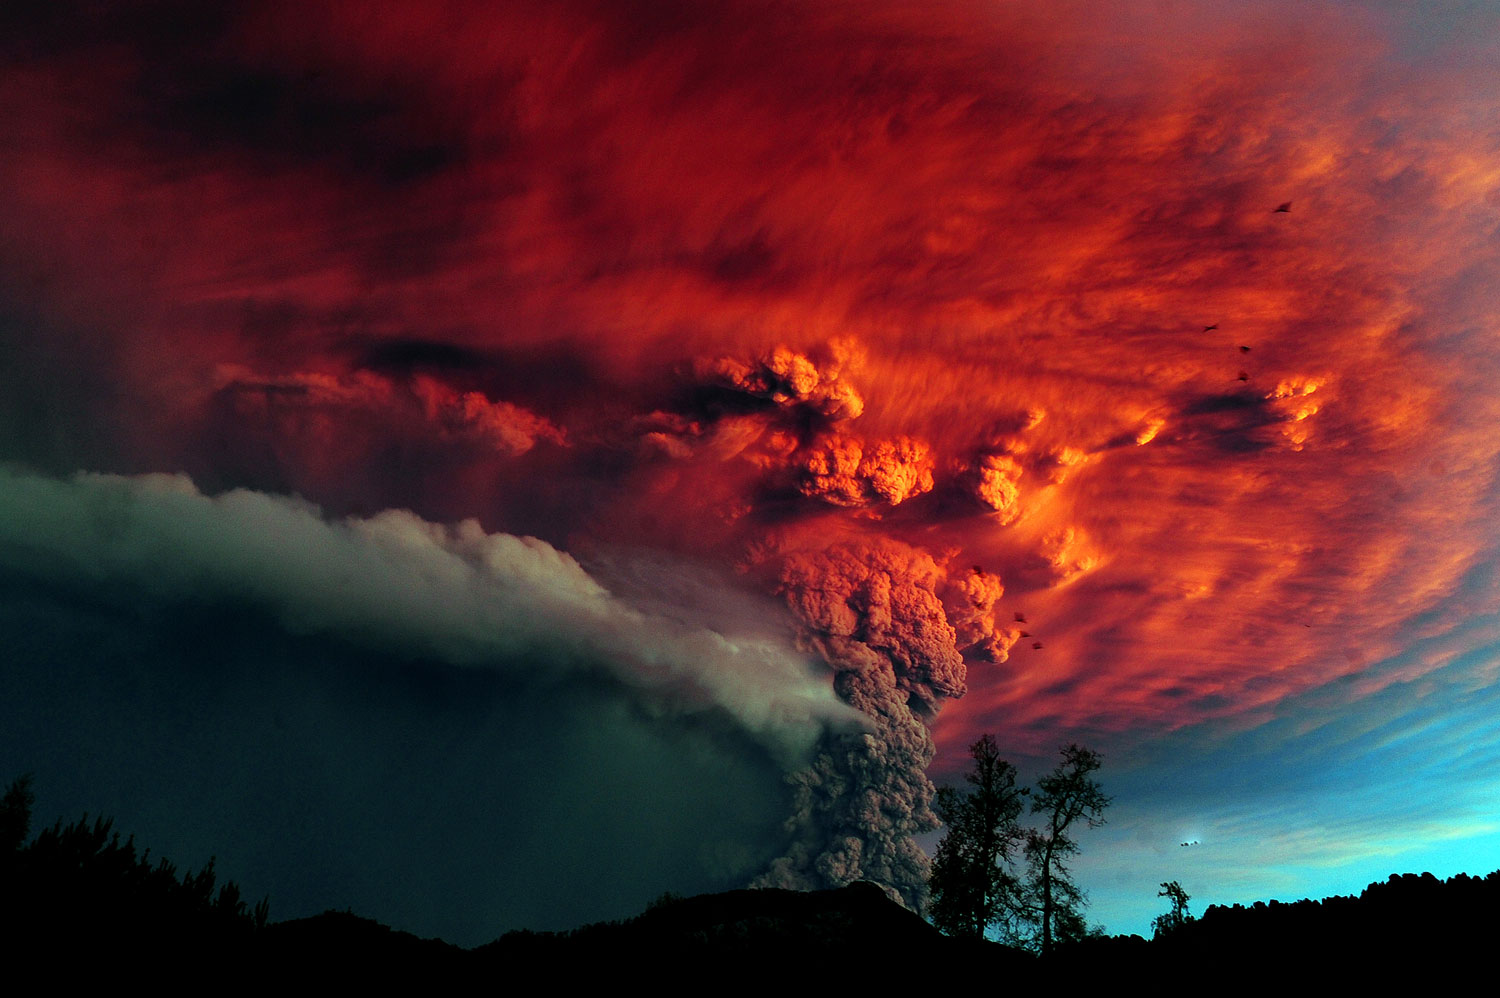 A cloud of ash billowing from Puyehue volcano near Osorno in southern Chile, 870 km south of Santiago, on June 5, 2011.